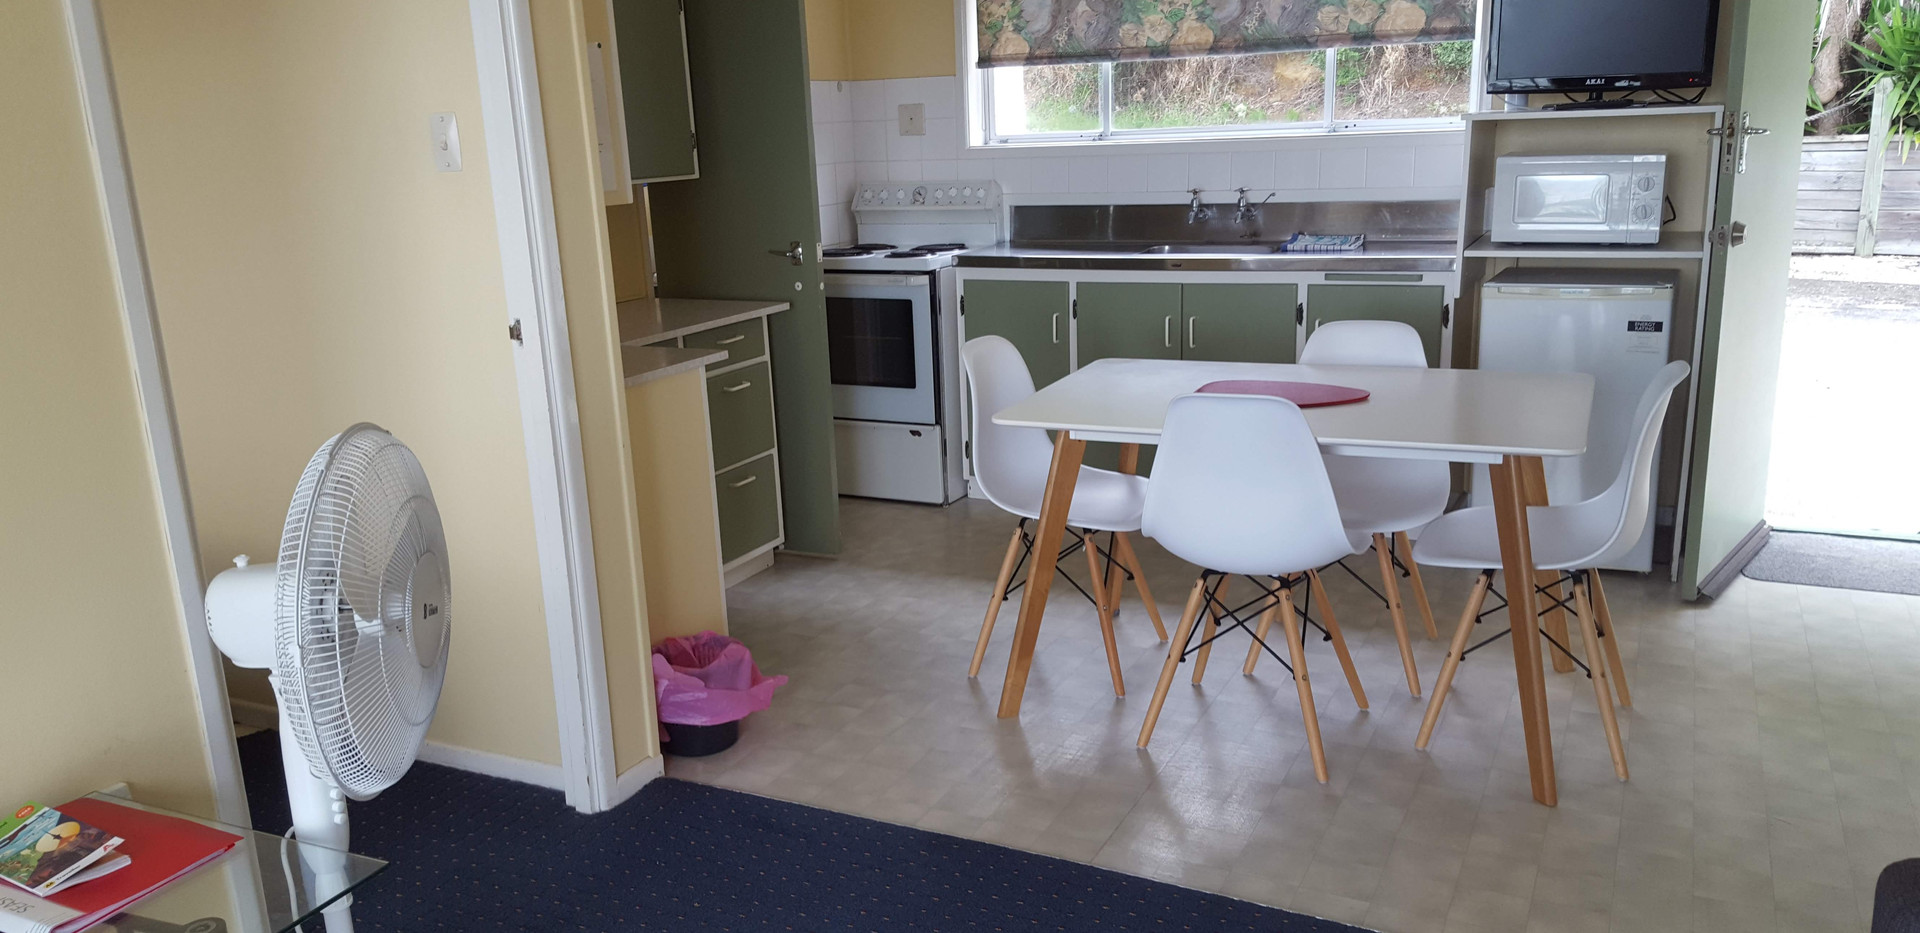 1960s kitchen in a one bedroom unit